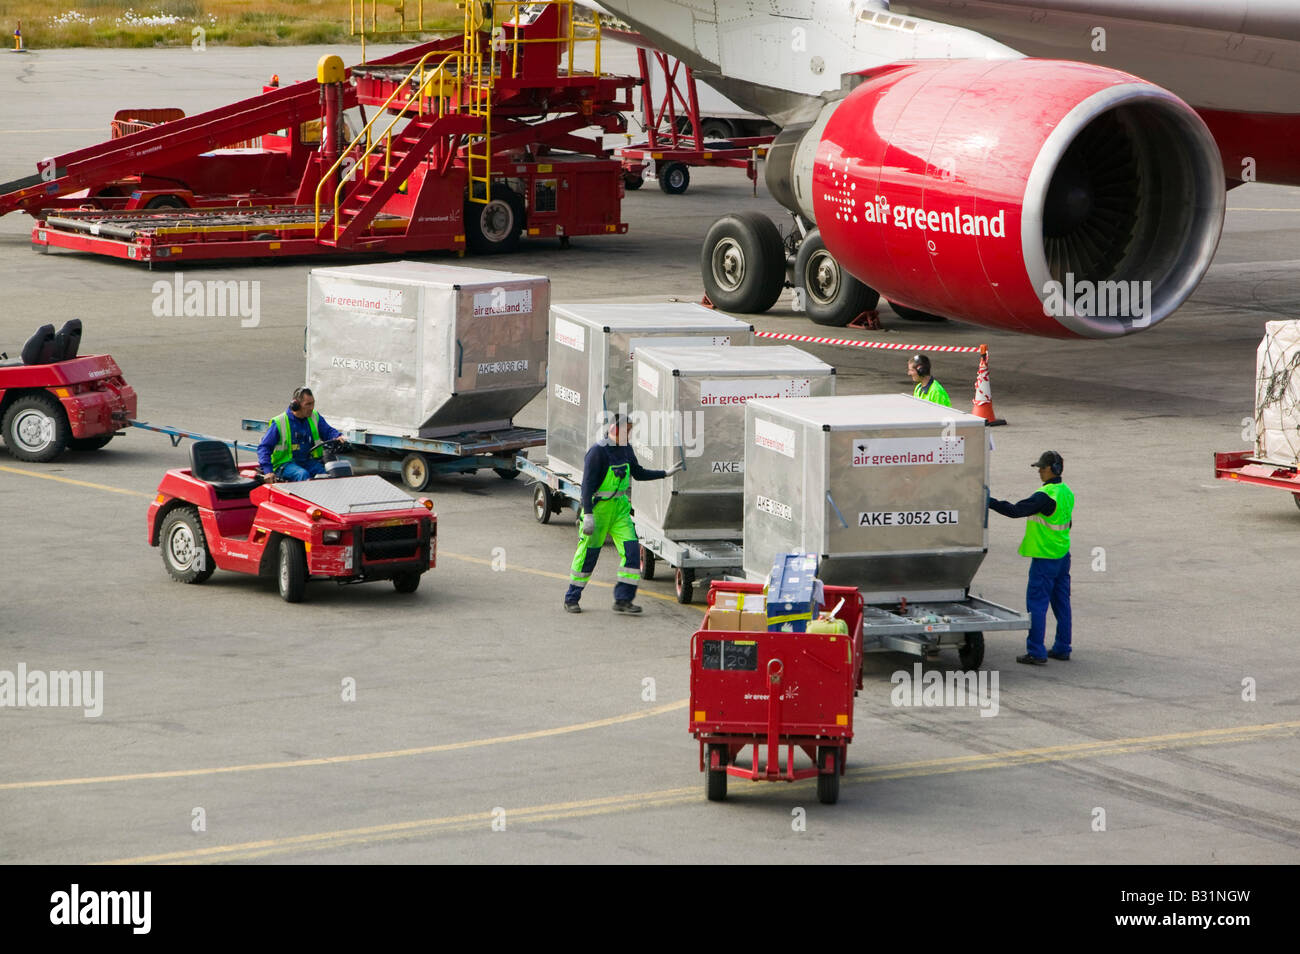 An air Greenland flight at Kangerlussuaq airport bringing freight and tourists to Greenland - Stock Image